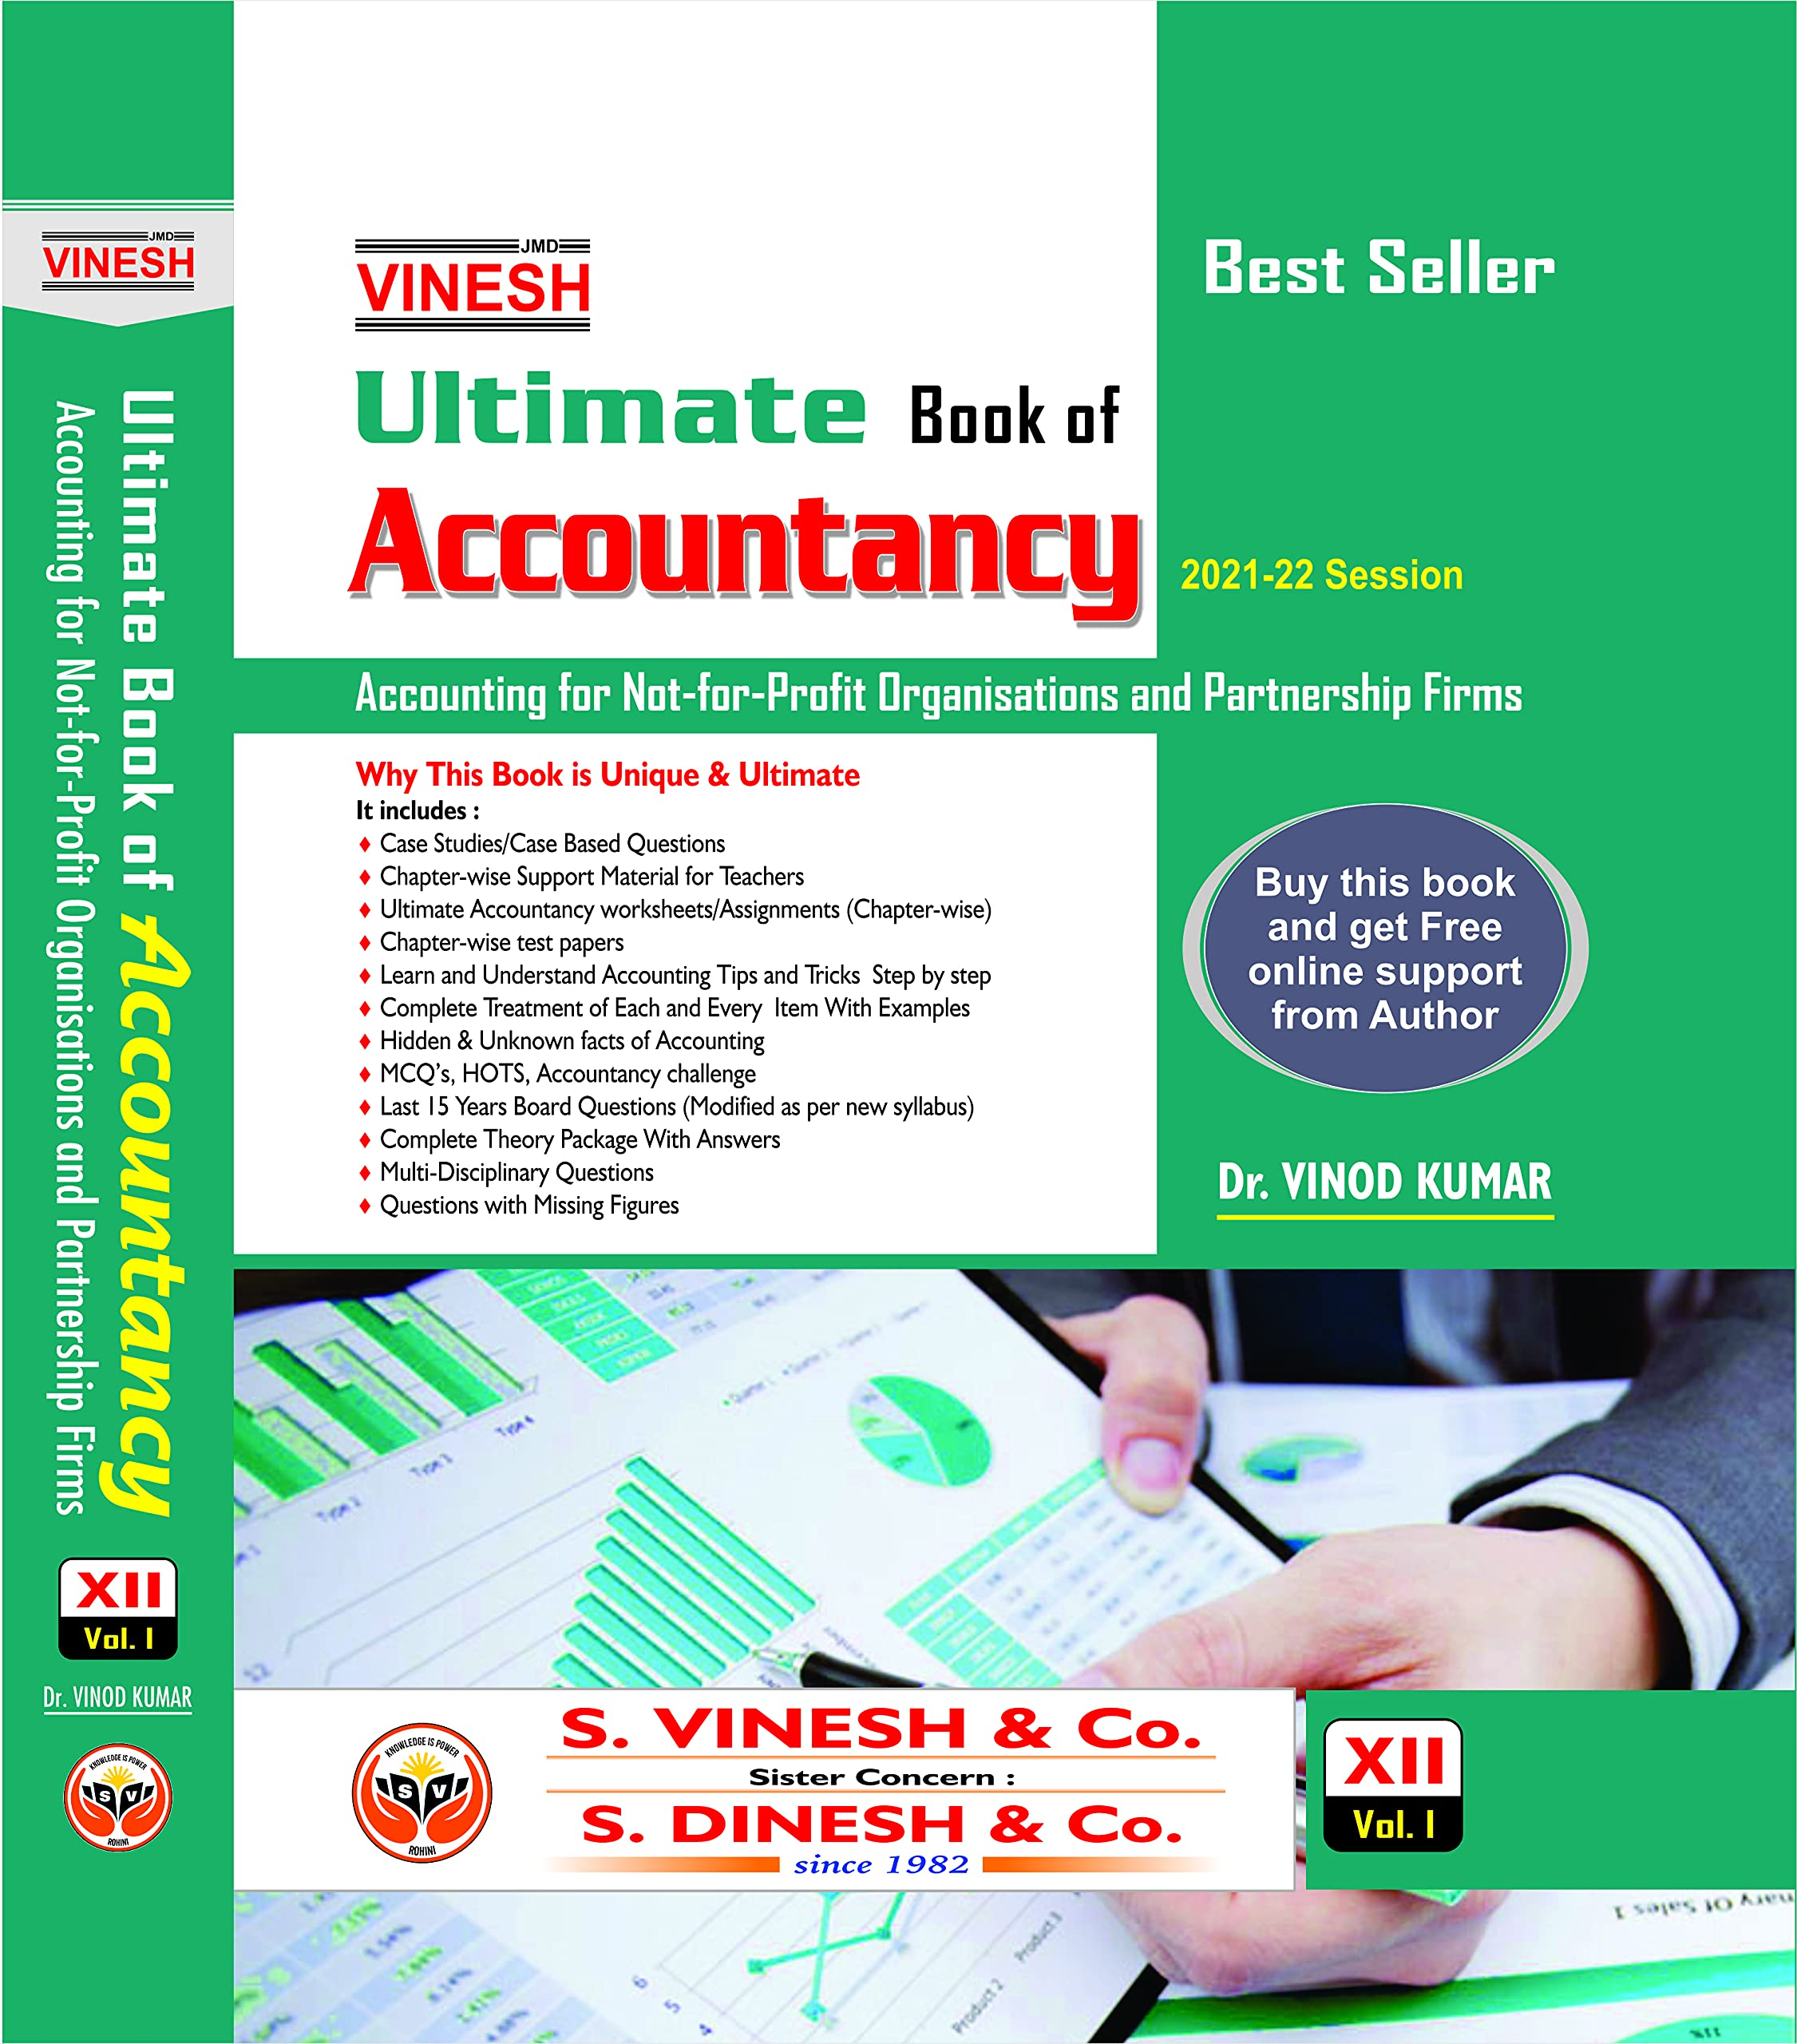 Vinesh Ultimate Book of Accountancy Class XII (Vol. I) (Accounting for Non- Profit Organizations and Partnership Firms) (CBSE) (Session 2021-2022)